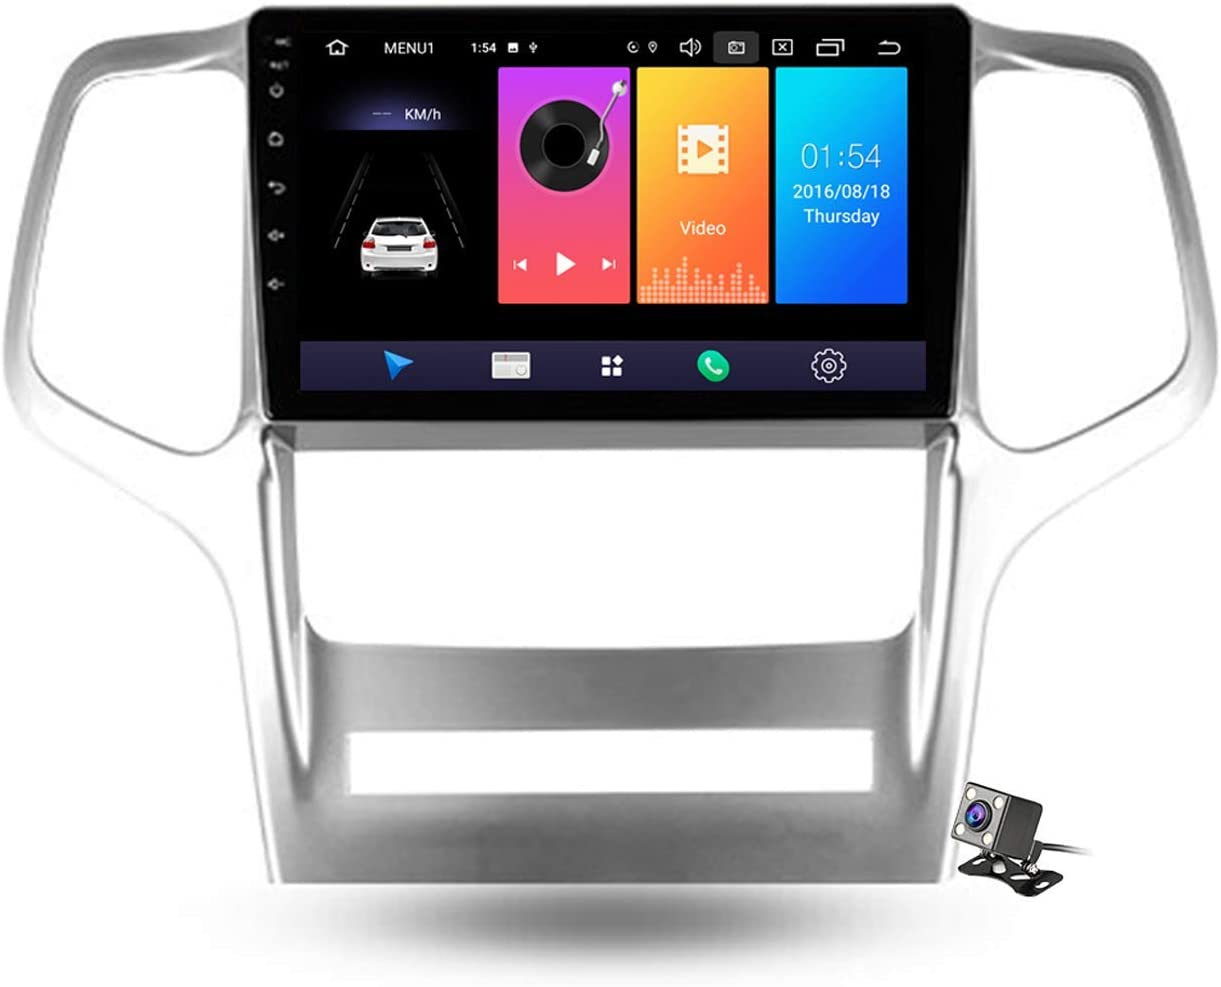 Car Stereo Android Max 68% OFF 9.0 Radio for Jeep Cherokee WK2 Baltimore Mall 2010-20 Grand